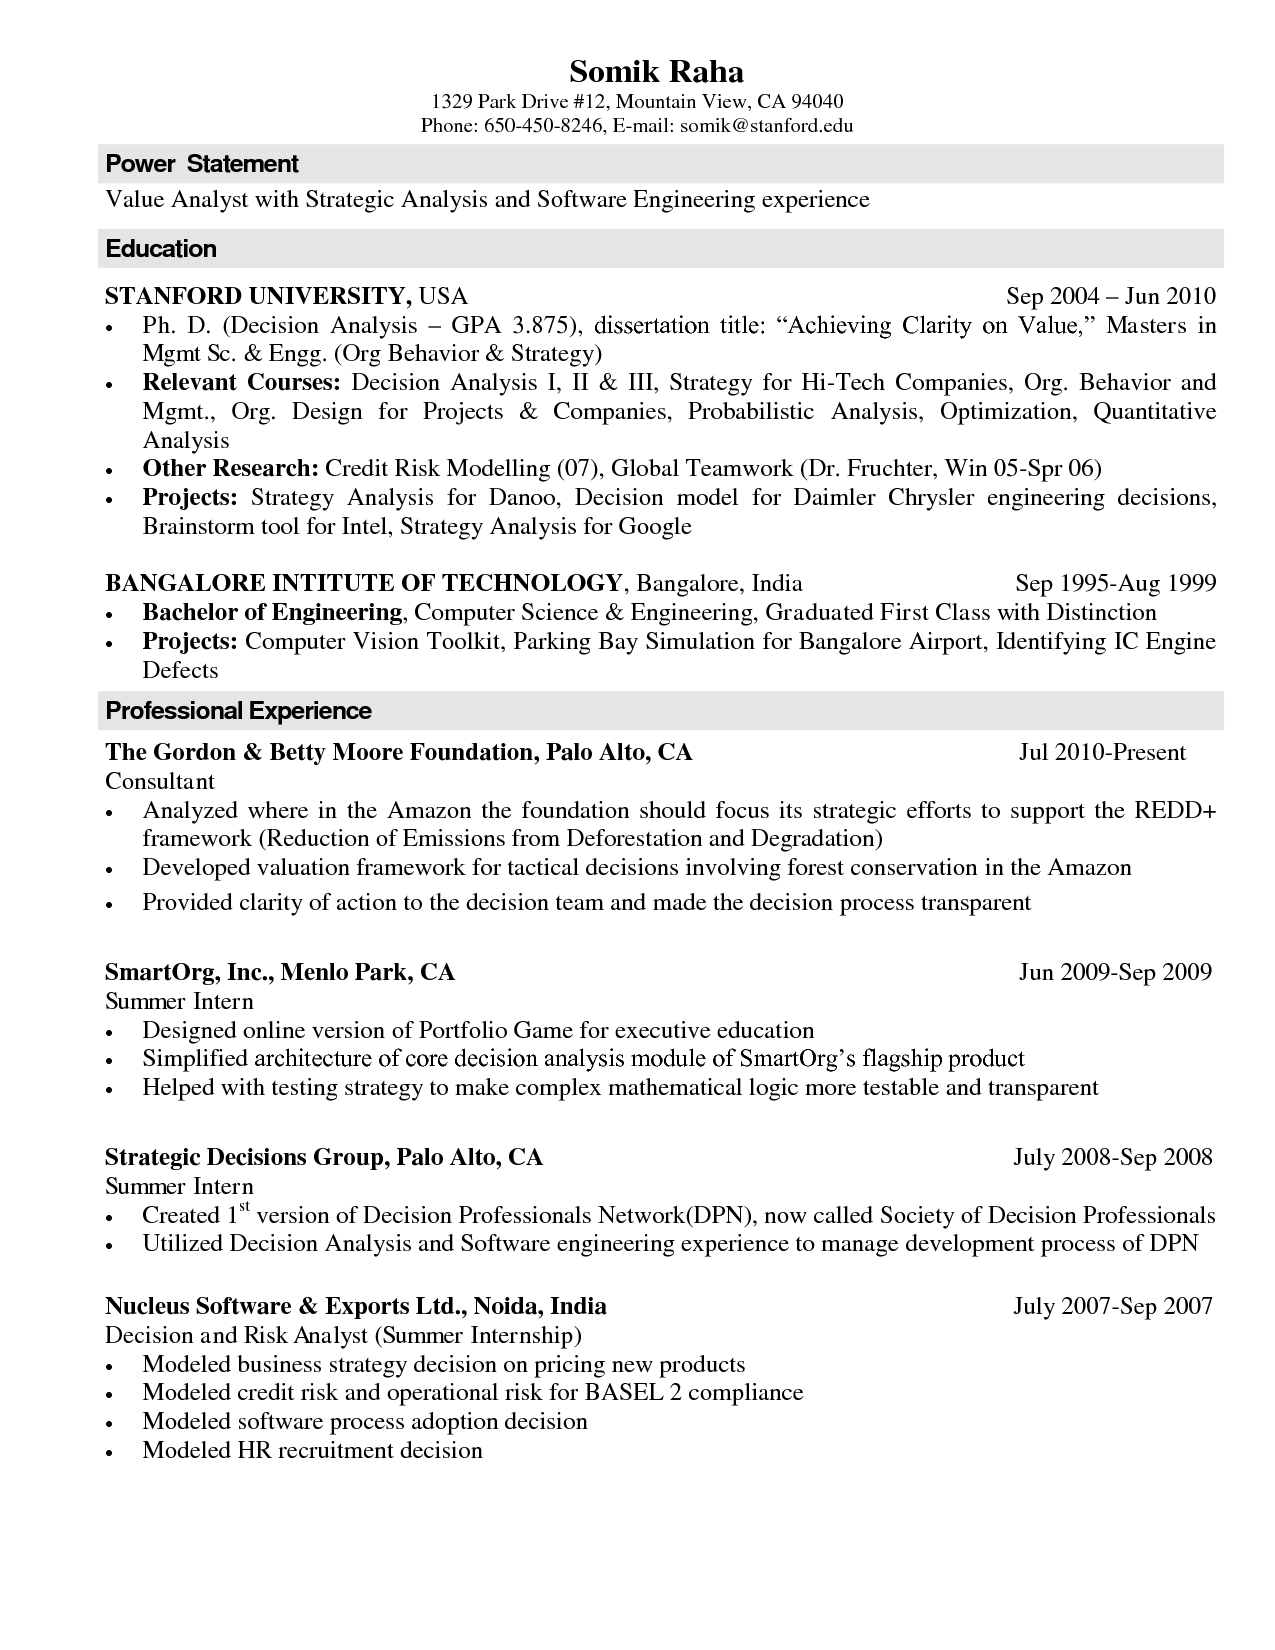 Computer Science Resume Templates   Http://www.resumecareer.info/computer  Resume For Computer Science